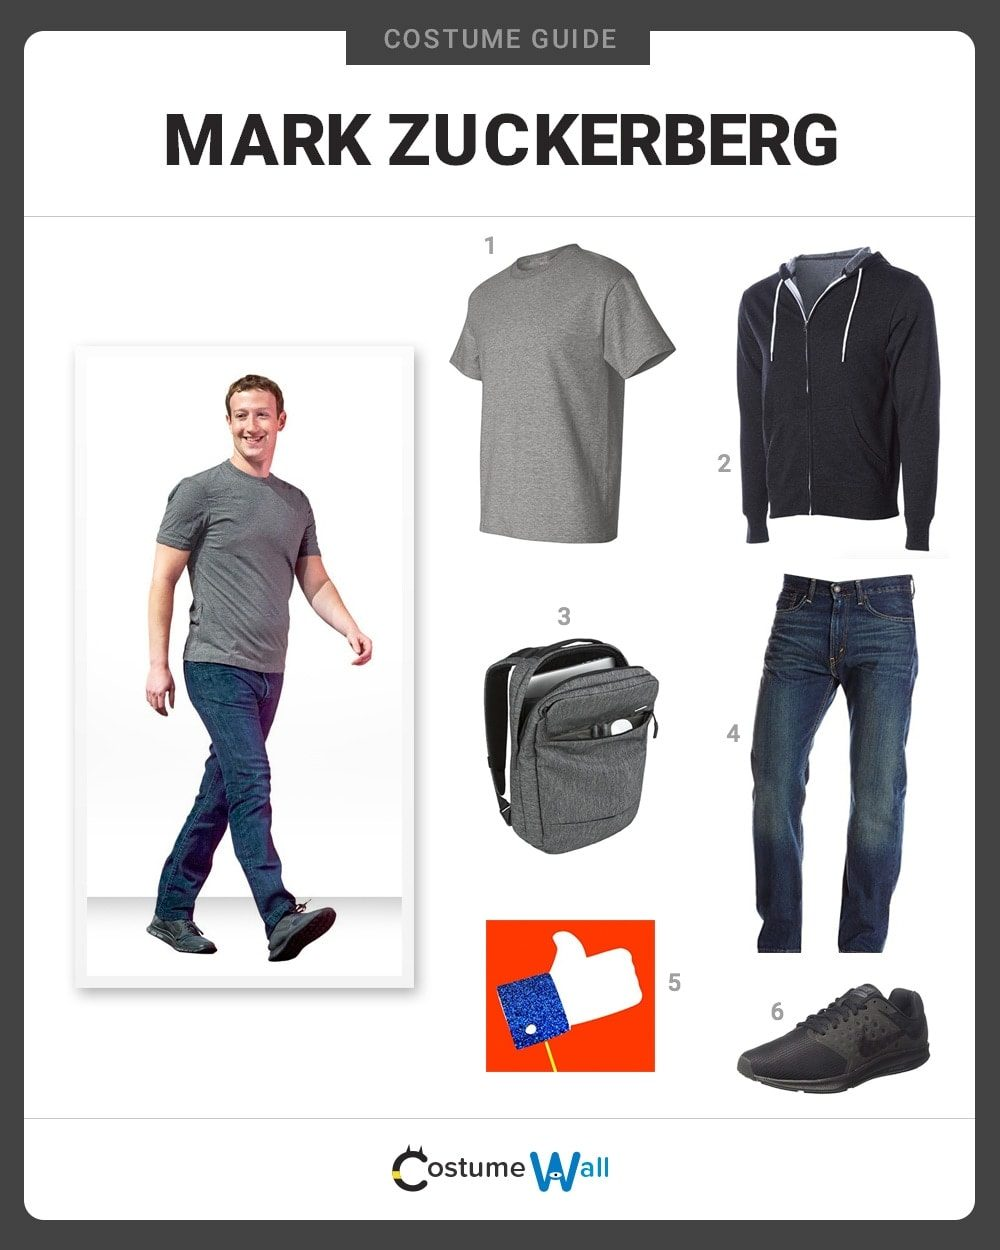 Mark Zuckerberg Costume Guide